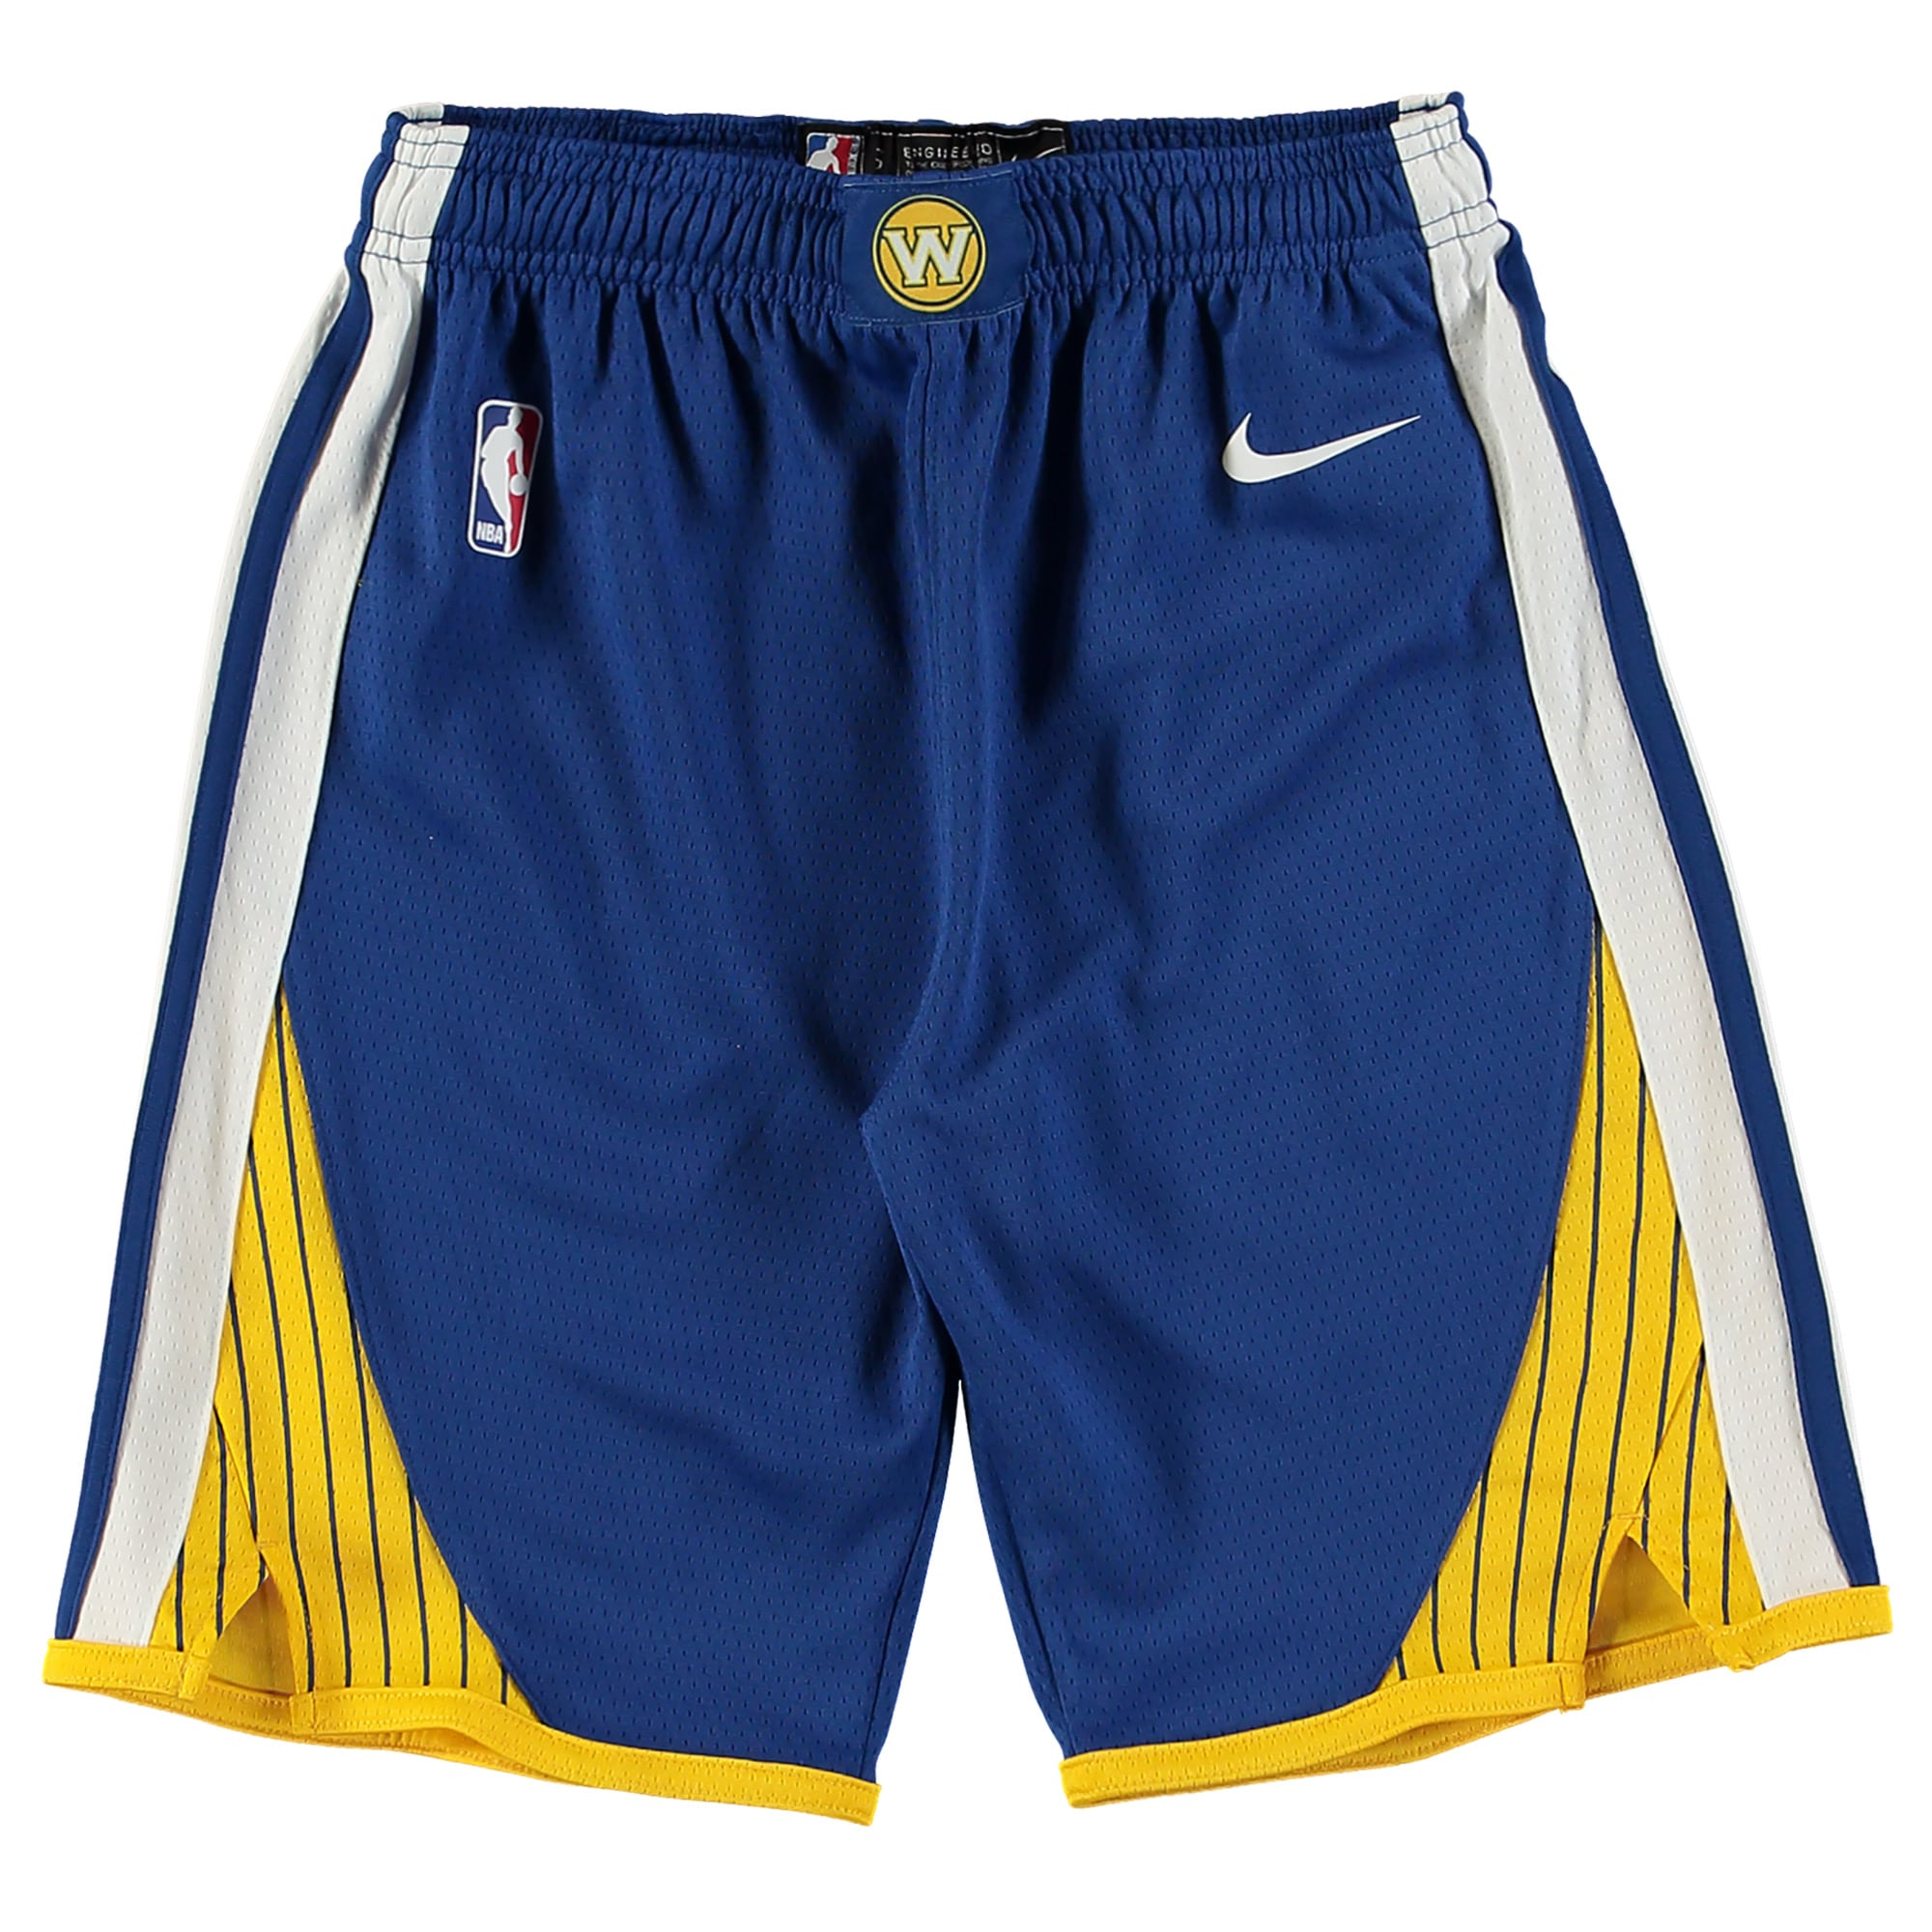 Golden State Warriors Nike Youth Swingman Icon Performance Shorts - Royal/Gold